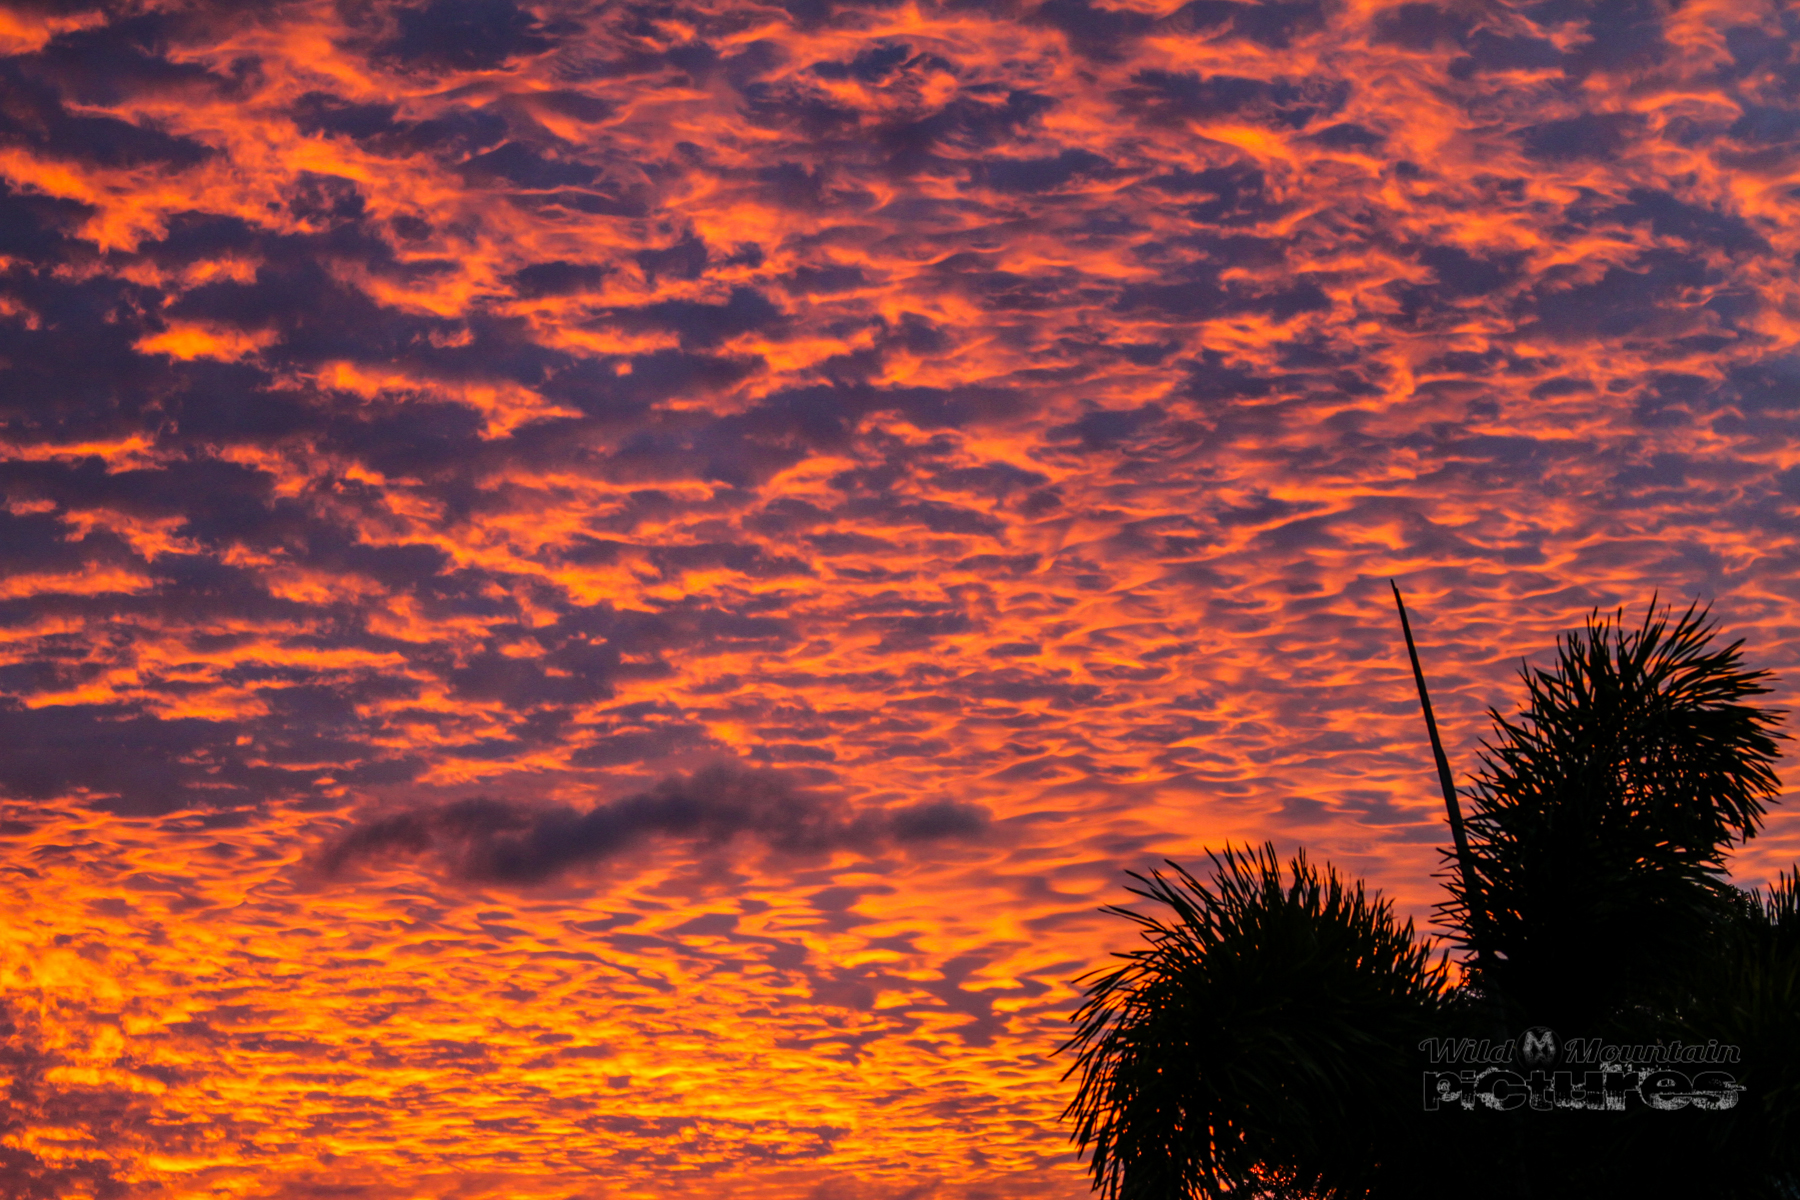 Sunset with Palms 2